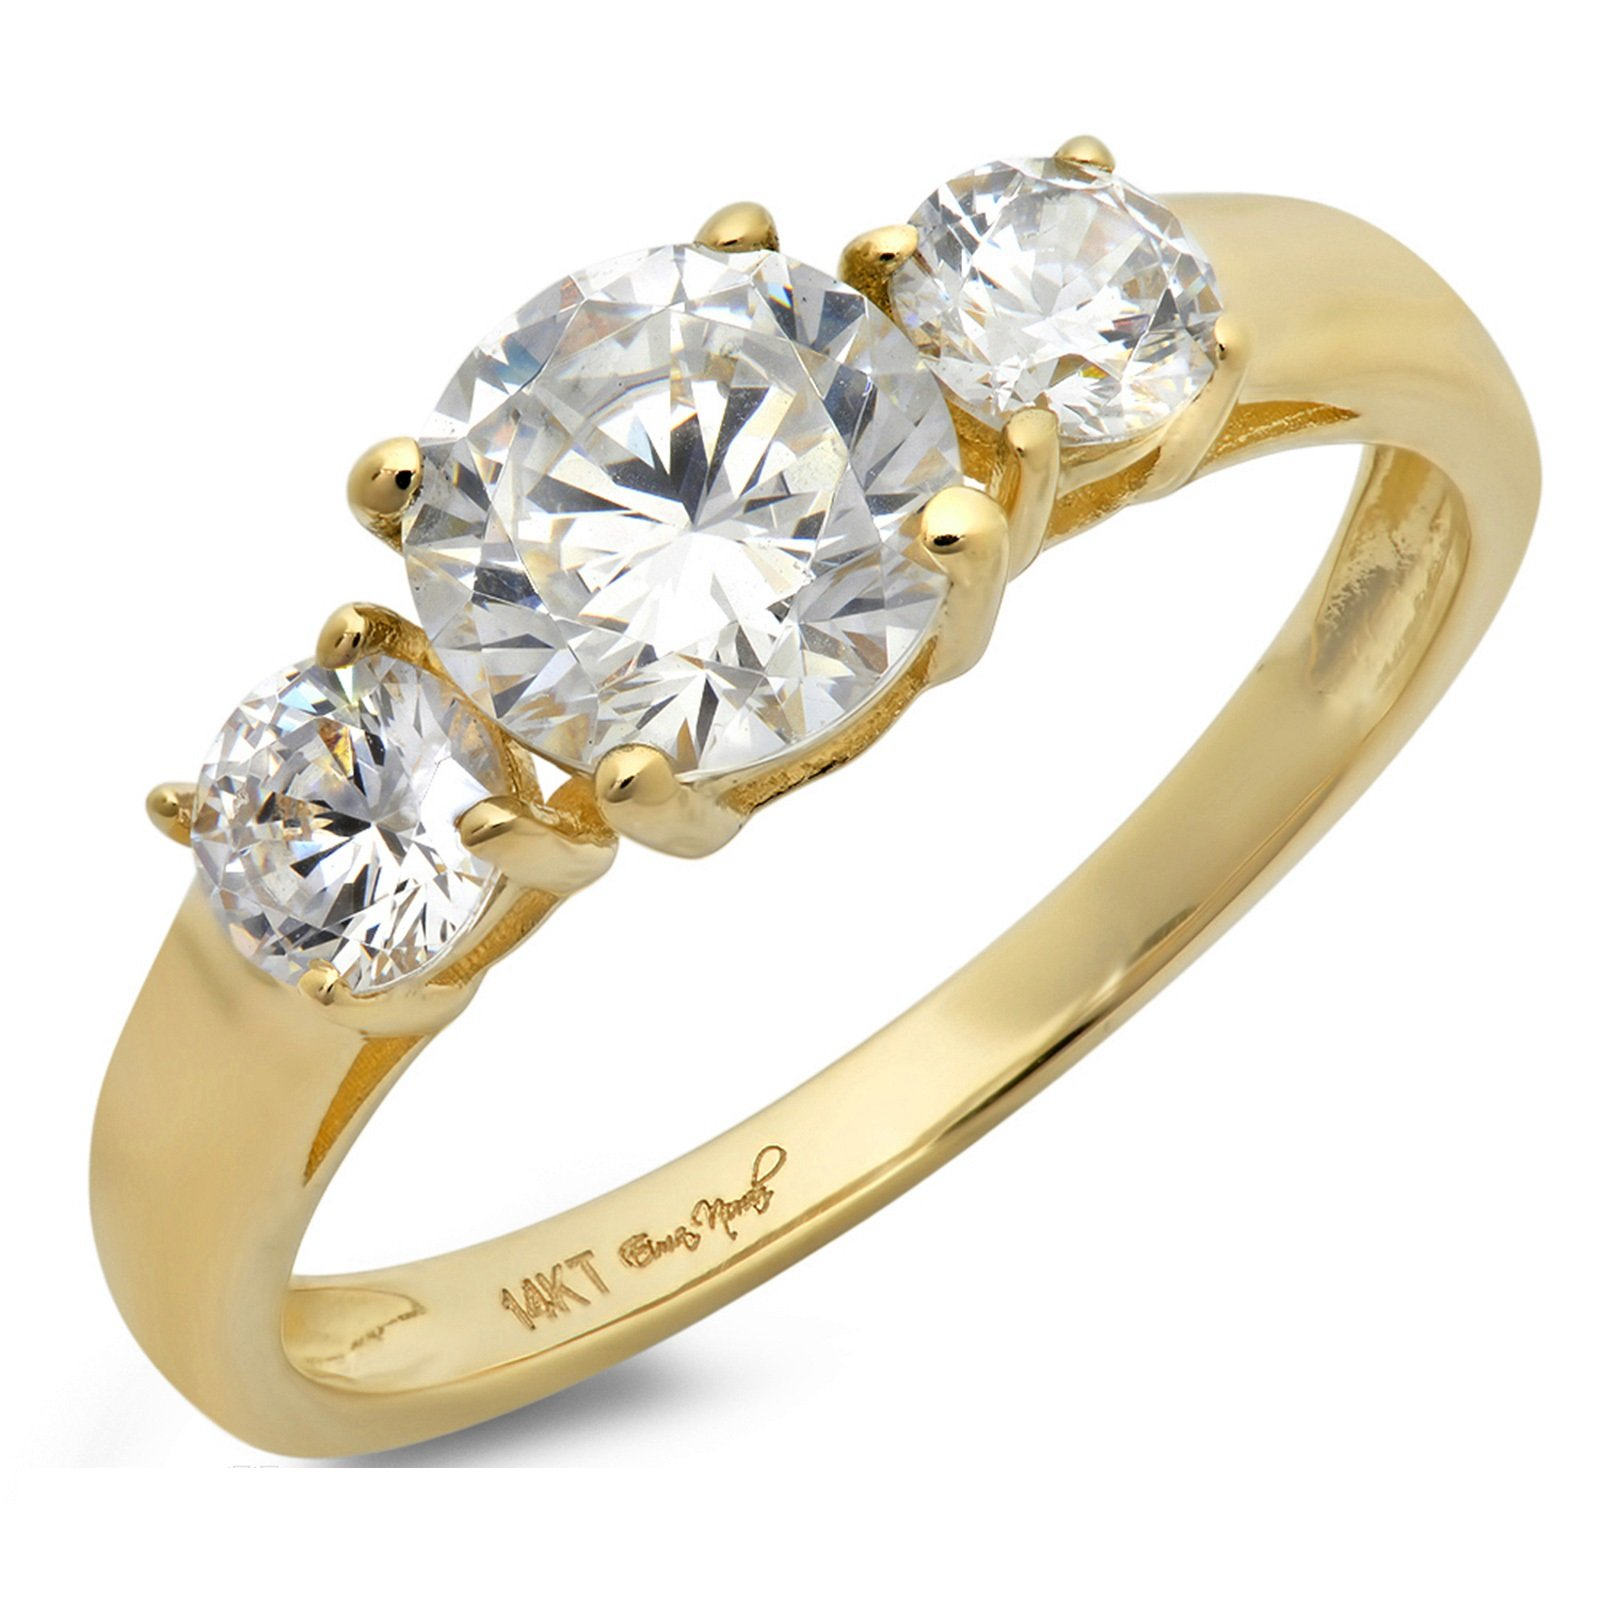 Clara Pucci 1.7 Ct Round Cut Solitaire Three Stone Bridal Anniversary Engagement Wedding Band Ring 14K Yellow Gold, Size 4.25